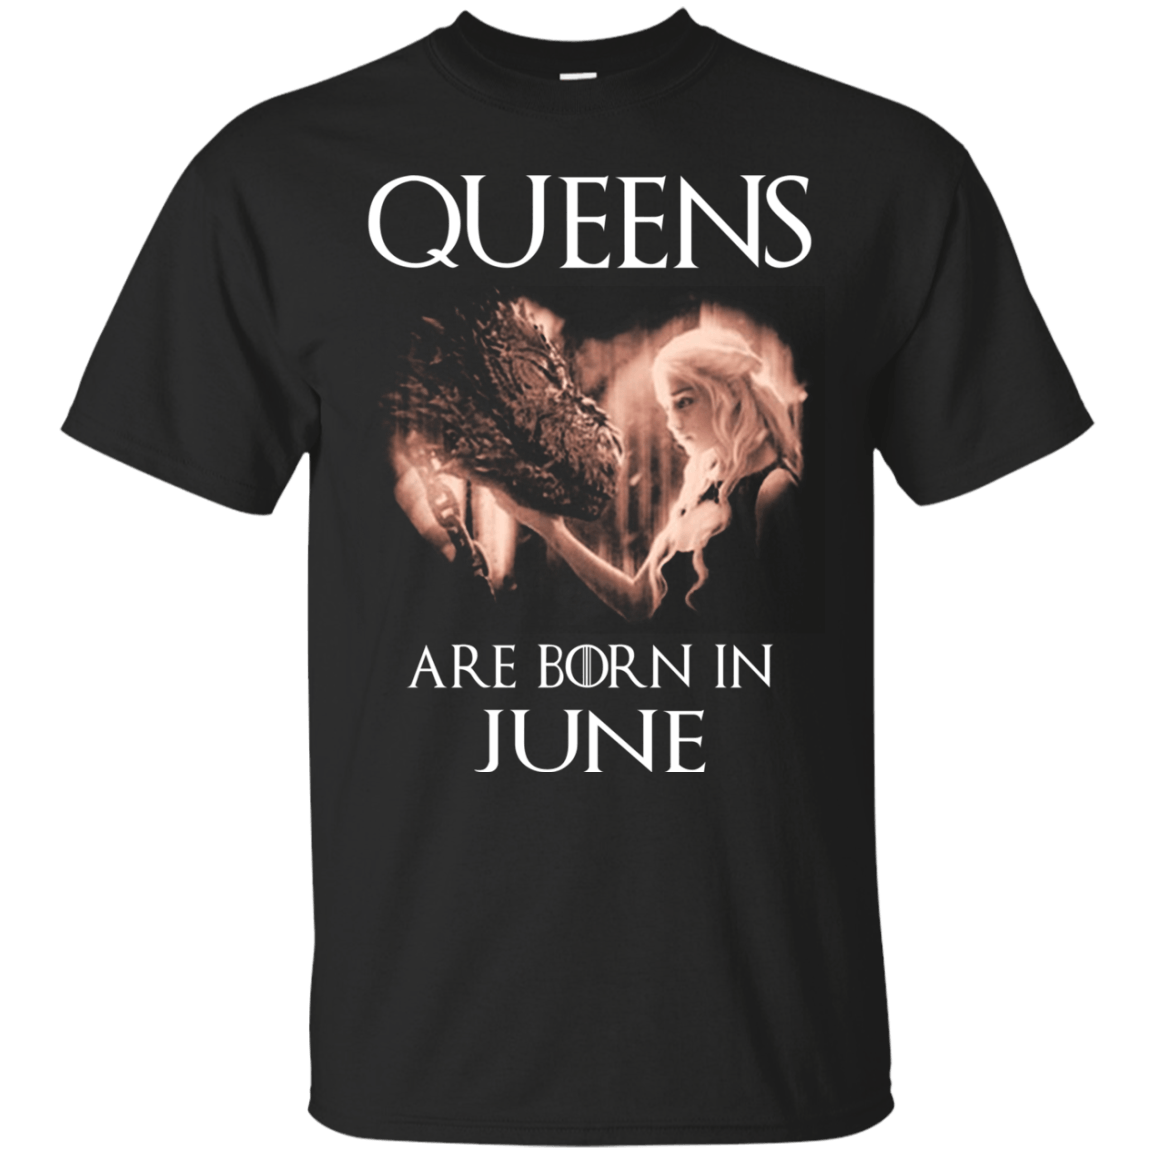 f57ec19032c2 Daenerys Targaryen  Queens are born in June shirt